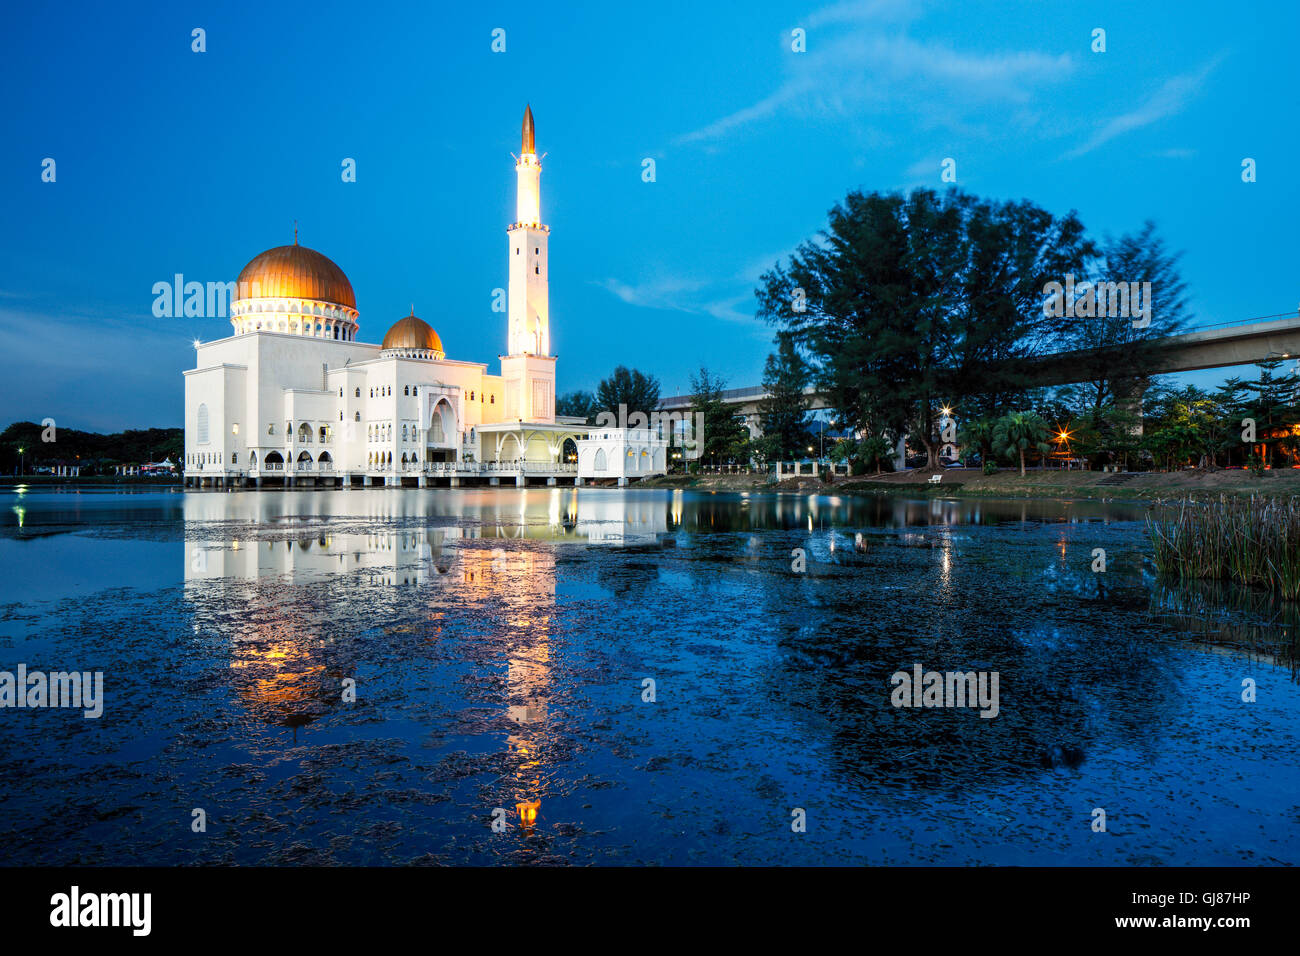 A beautiful evening at the As Salam Mosque in Puchong Perdana, Malaysia. - Stock Image